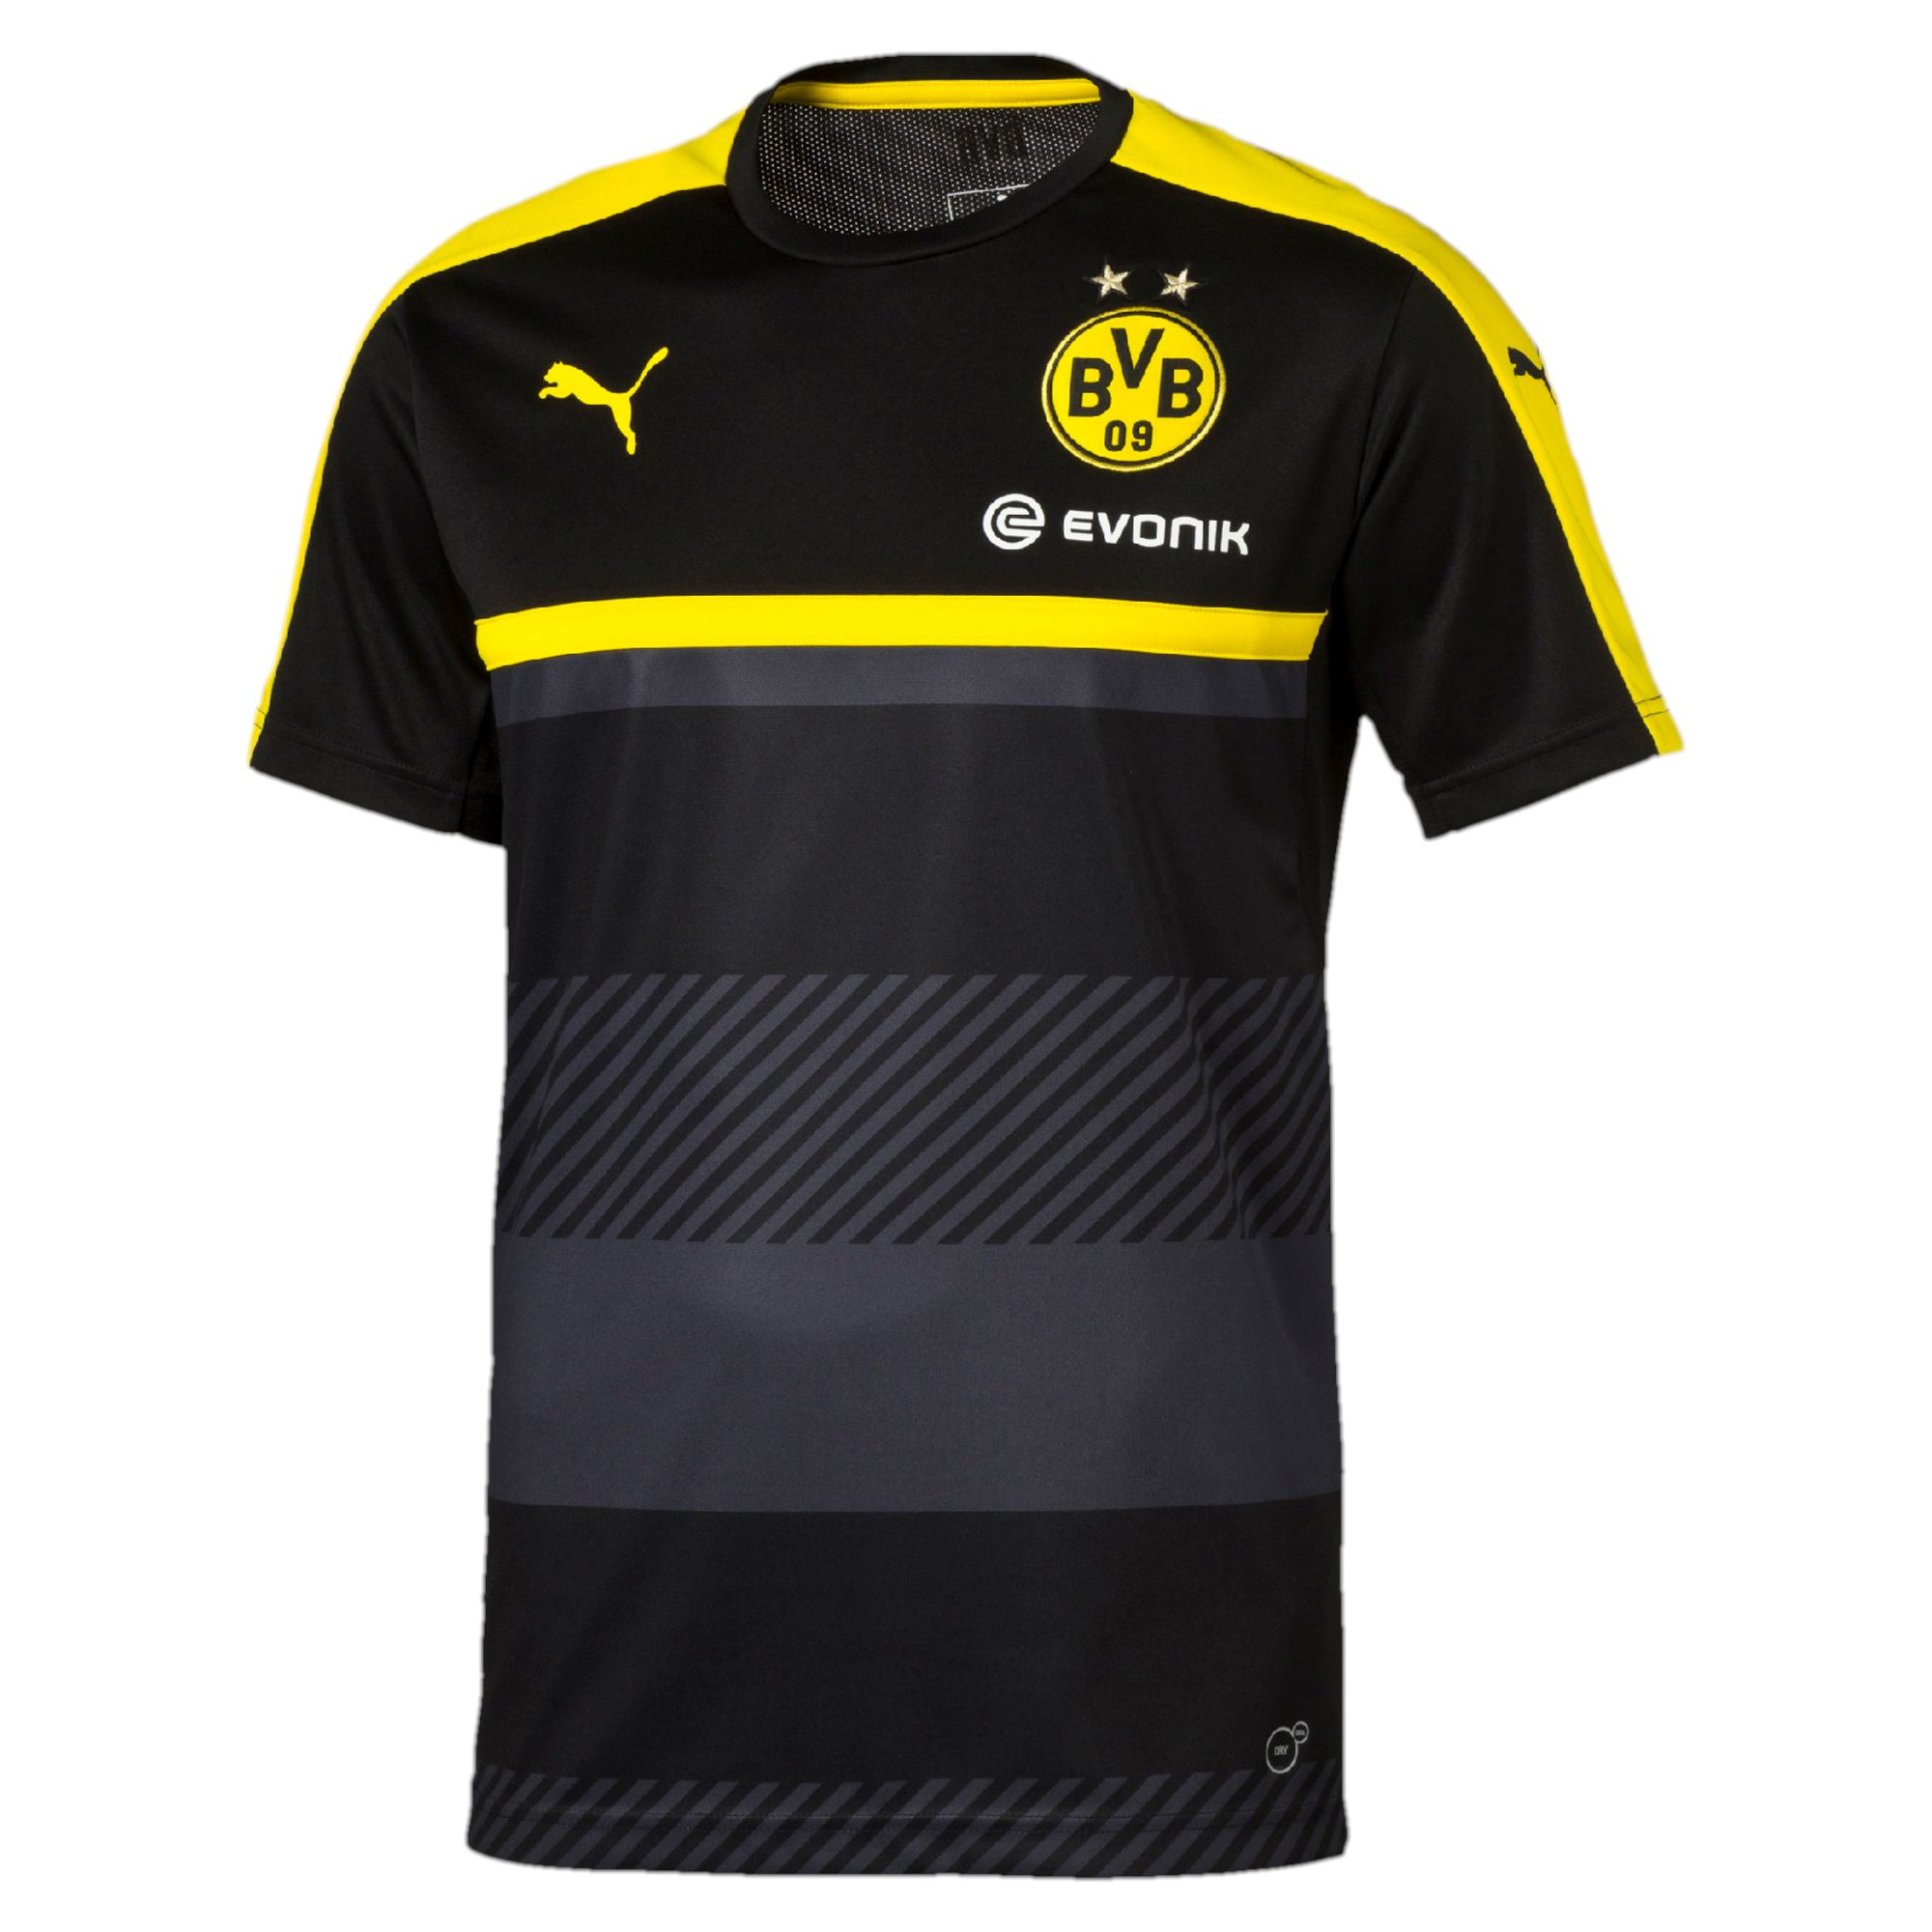 BVB Training Jersey with Spons